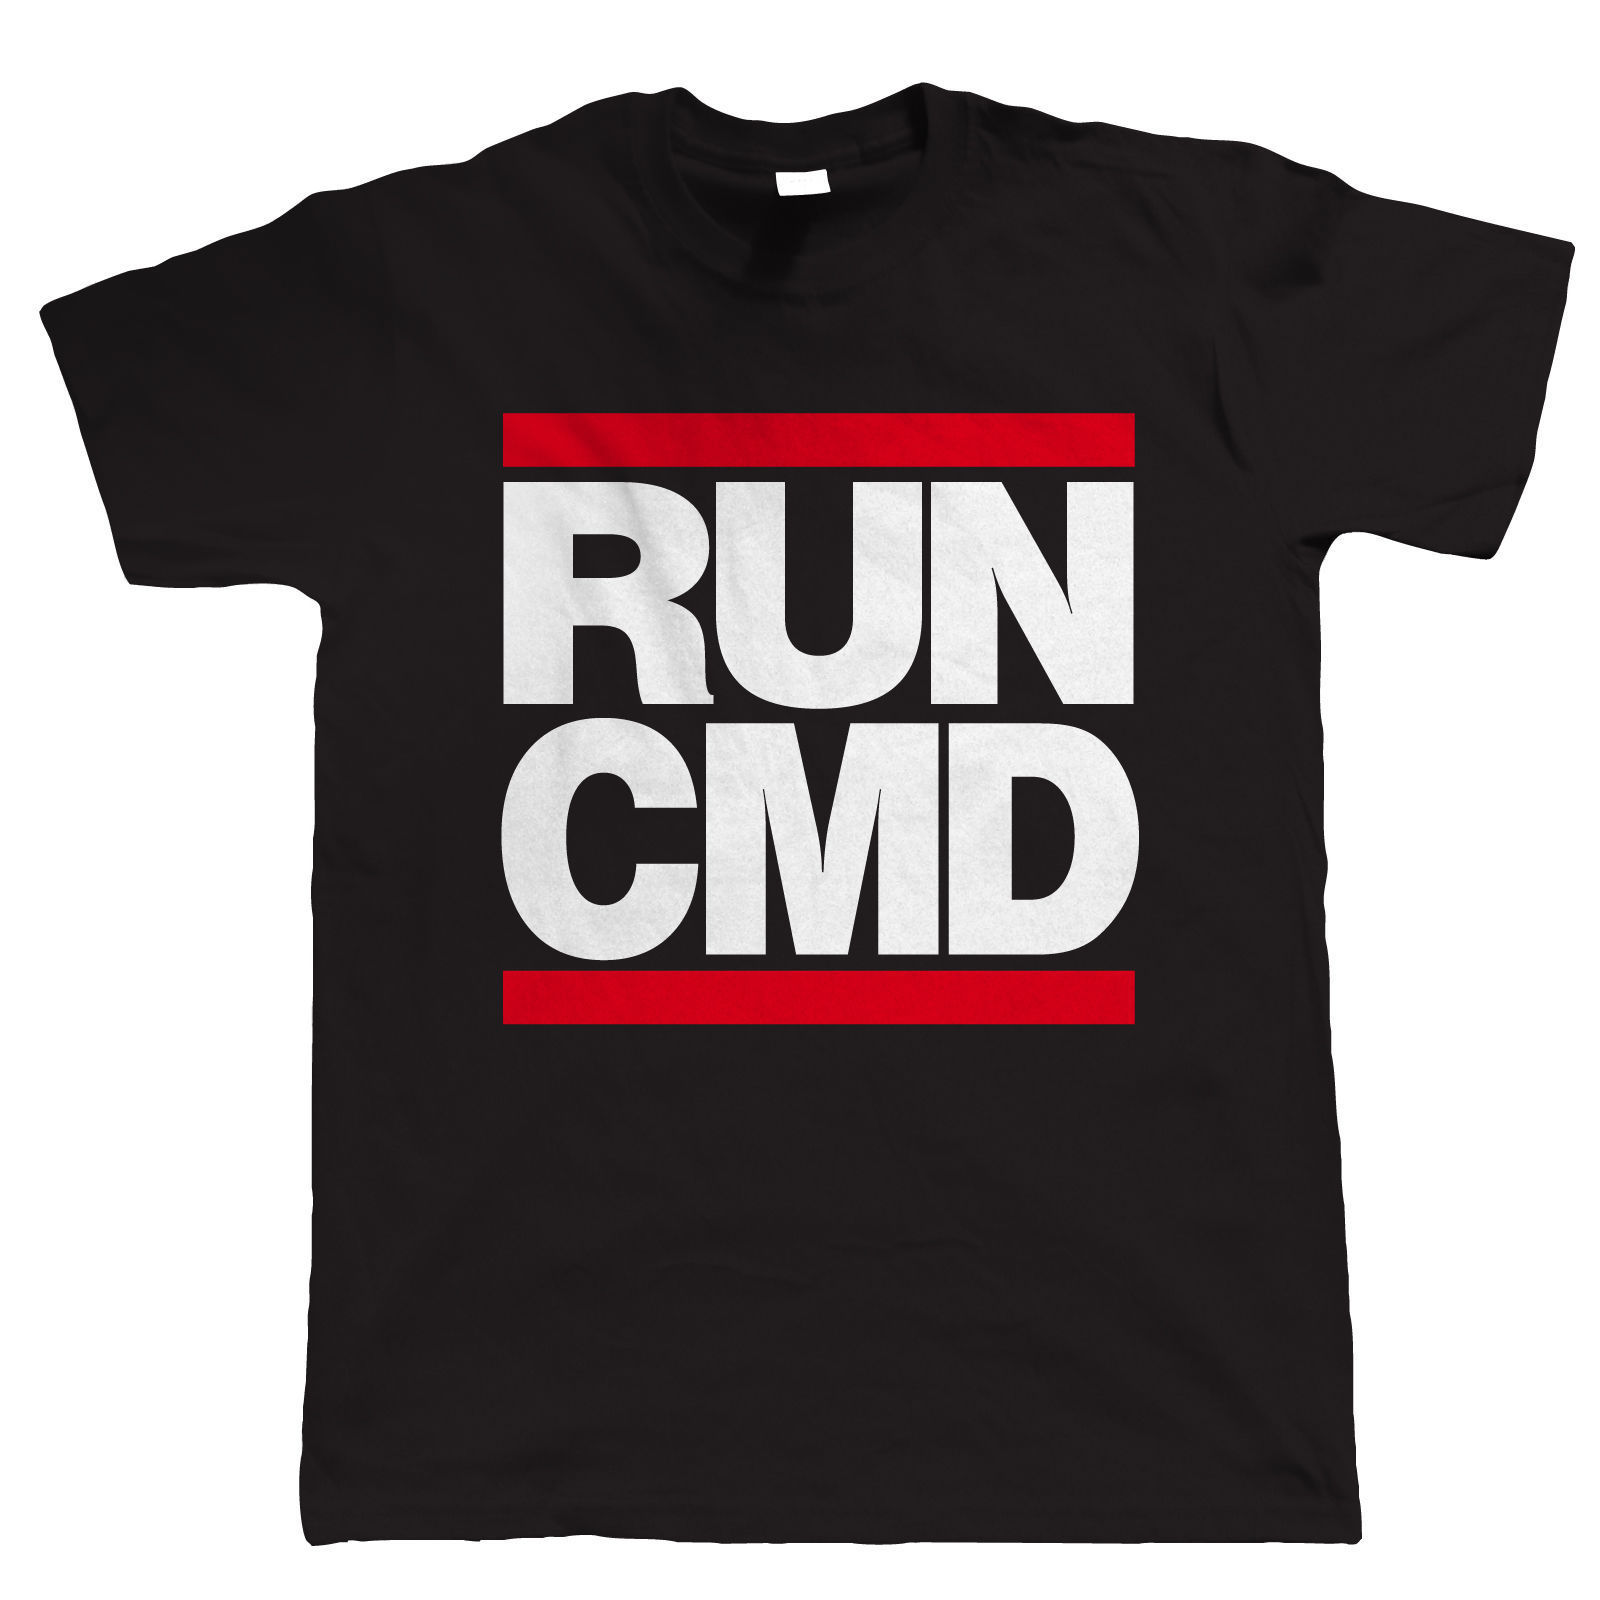 RUNER CMD Web Developer PC Gamer Geek T Shirt New Short Sleeve Round Collar Mens T-Shirts Fashion 2018 Pop Cotton Man Tee